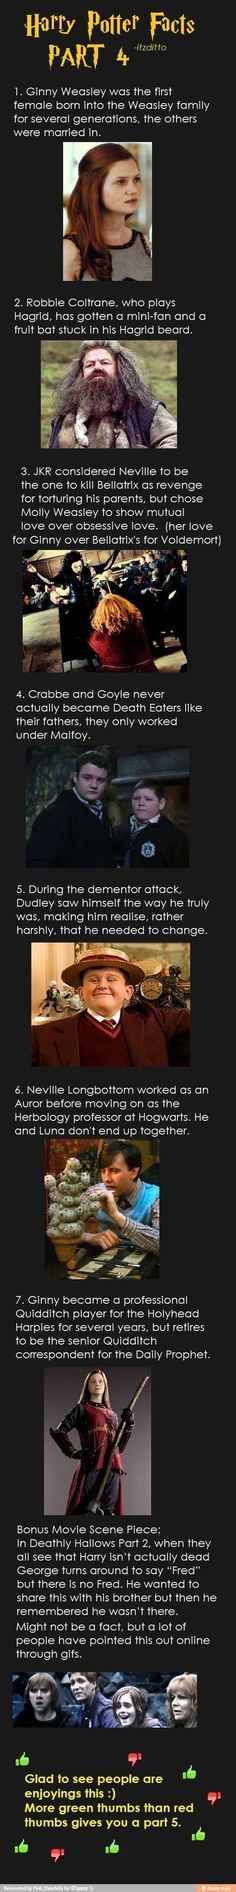 Harry Potter Fact 4!: